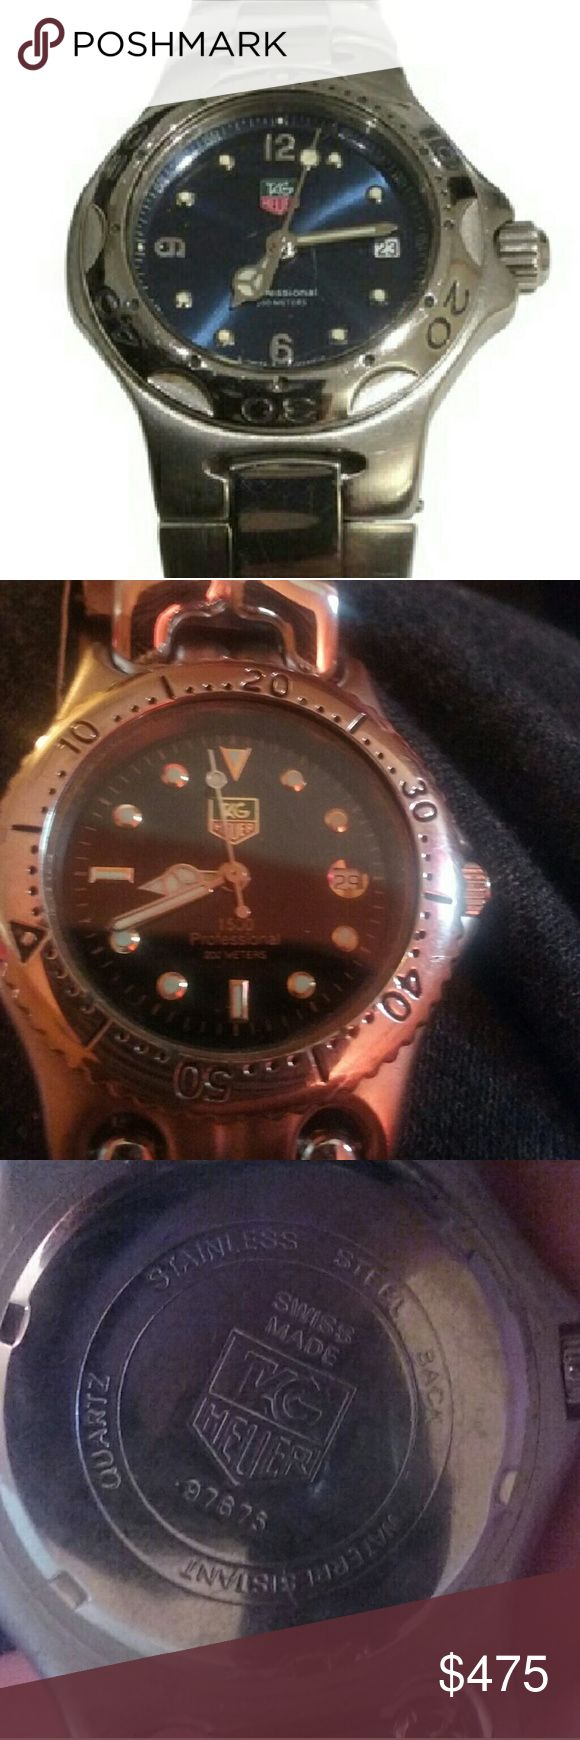 Tag Heuer professional 1500 women's watch Tag Heuer 1500 Professional  Women's watch,  Blue Diver, Swiss Quartz movement, has a few scratches but nothing other than normal wear. Tag Heuer Accessories Watches